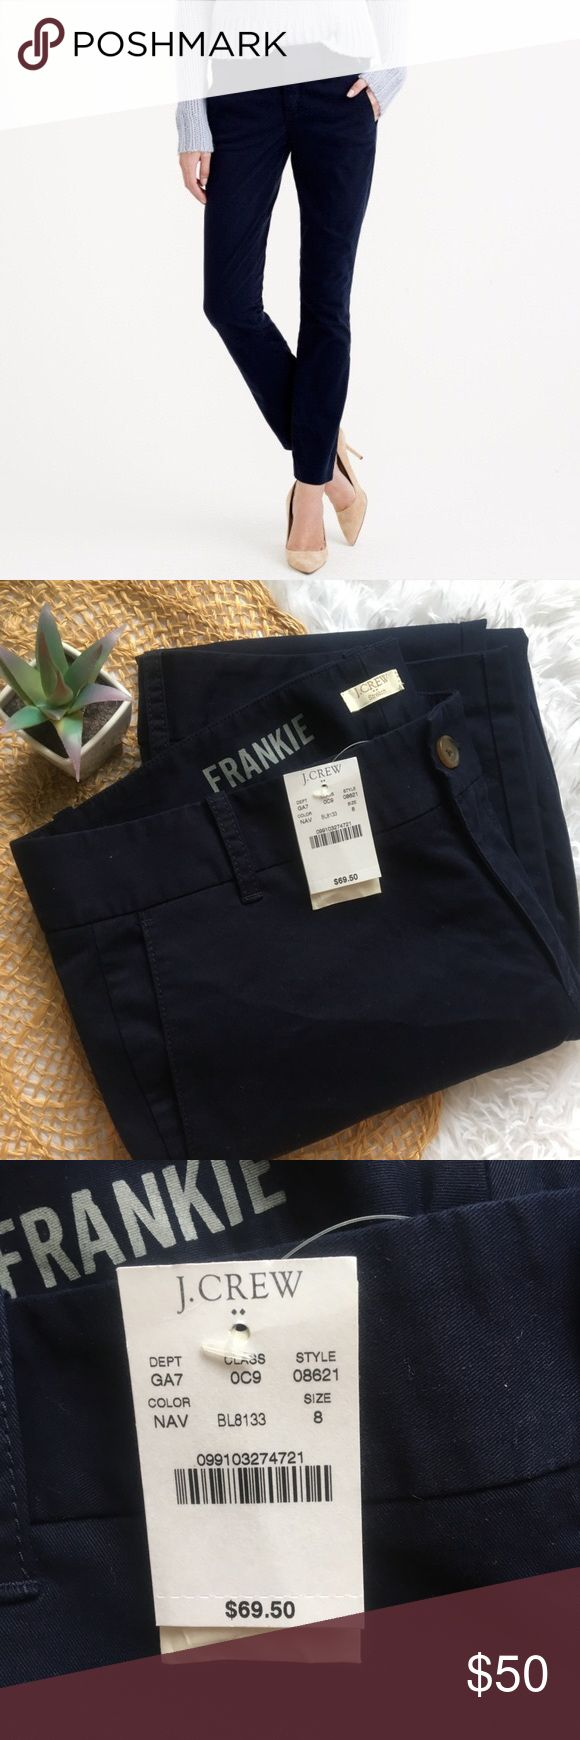 NWT J. Crew Frankie Stretch Navy Blue Chinos NWT J. Crew Frankie Stretch Navy Blue Chinos Bundle 3+ items and receive 20% off your entire purchase!   No trades, no holds, no returns (unless it's Poshmark approved.) J. Crew Pants Trousers